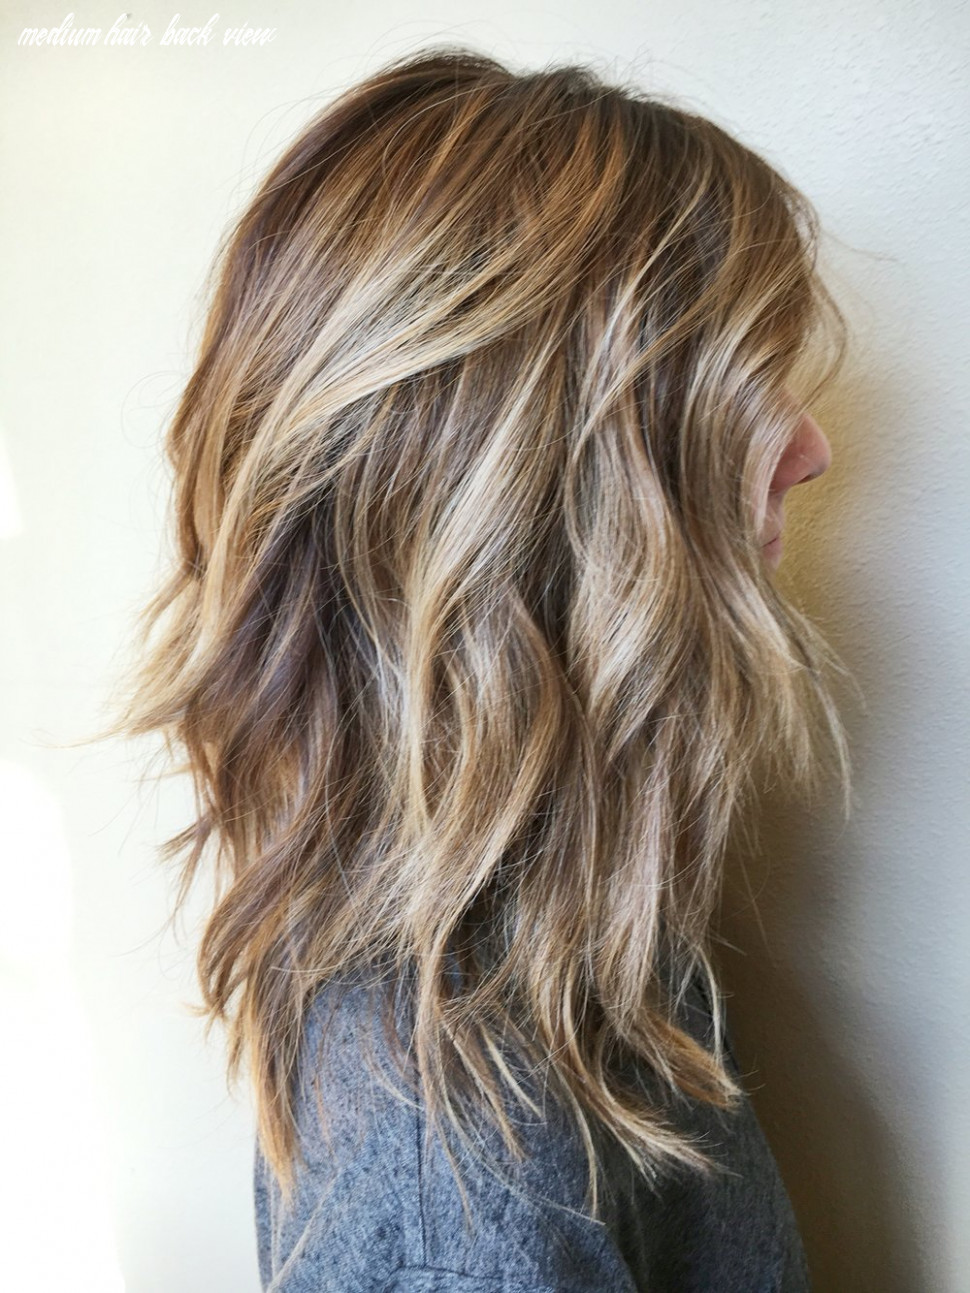 12 Amazing Medium Length Hairstyles & Shoulder Length Haircuts 12